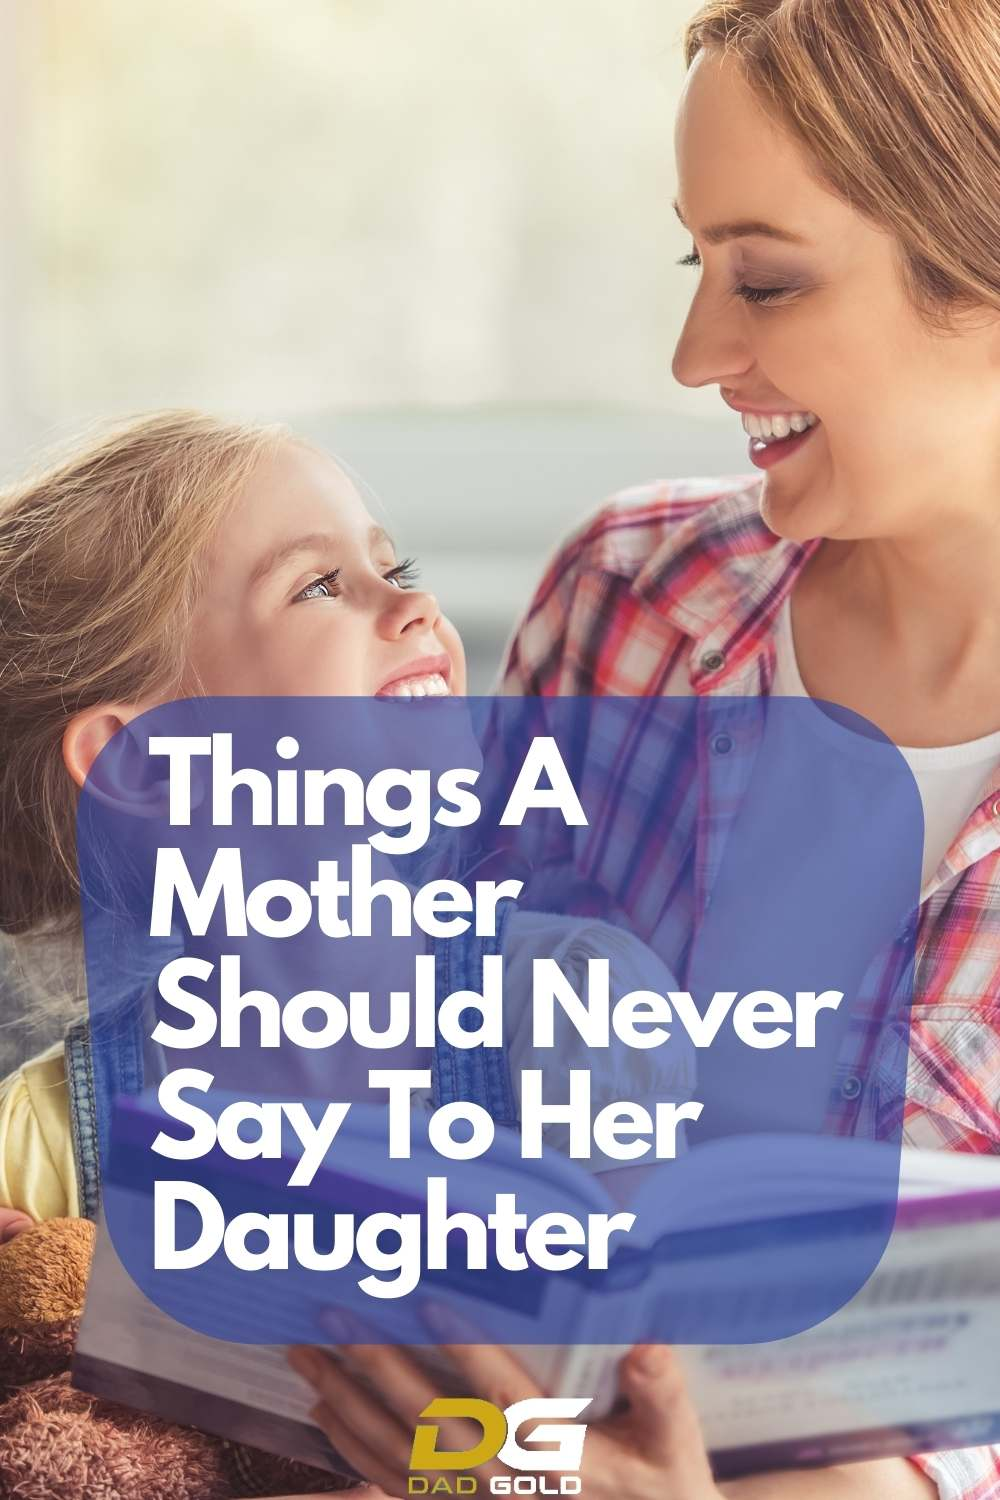 Things A Mother Should Never Say To Her Daughter